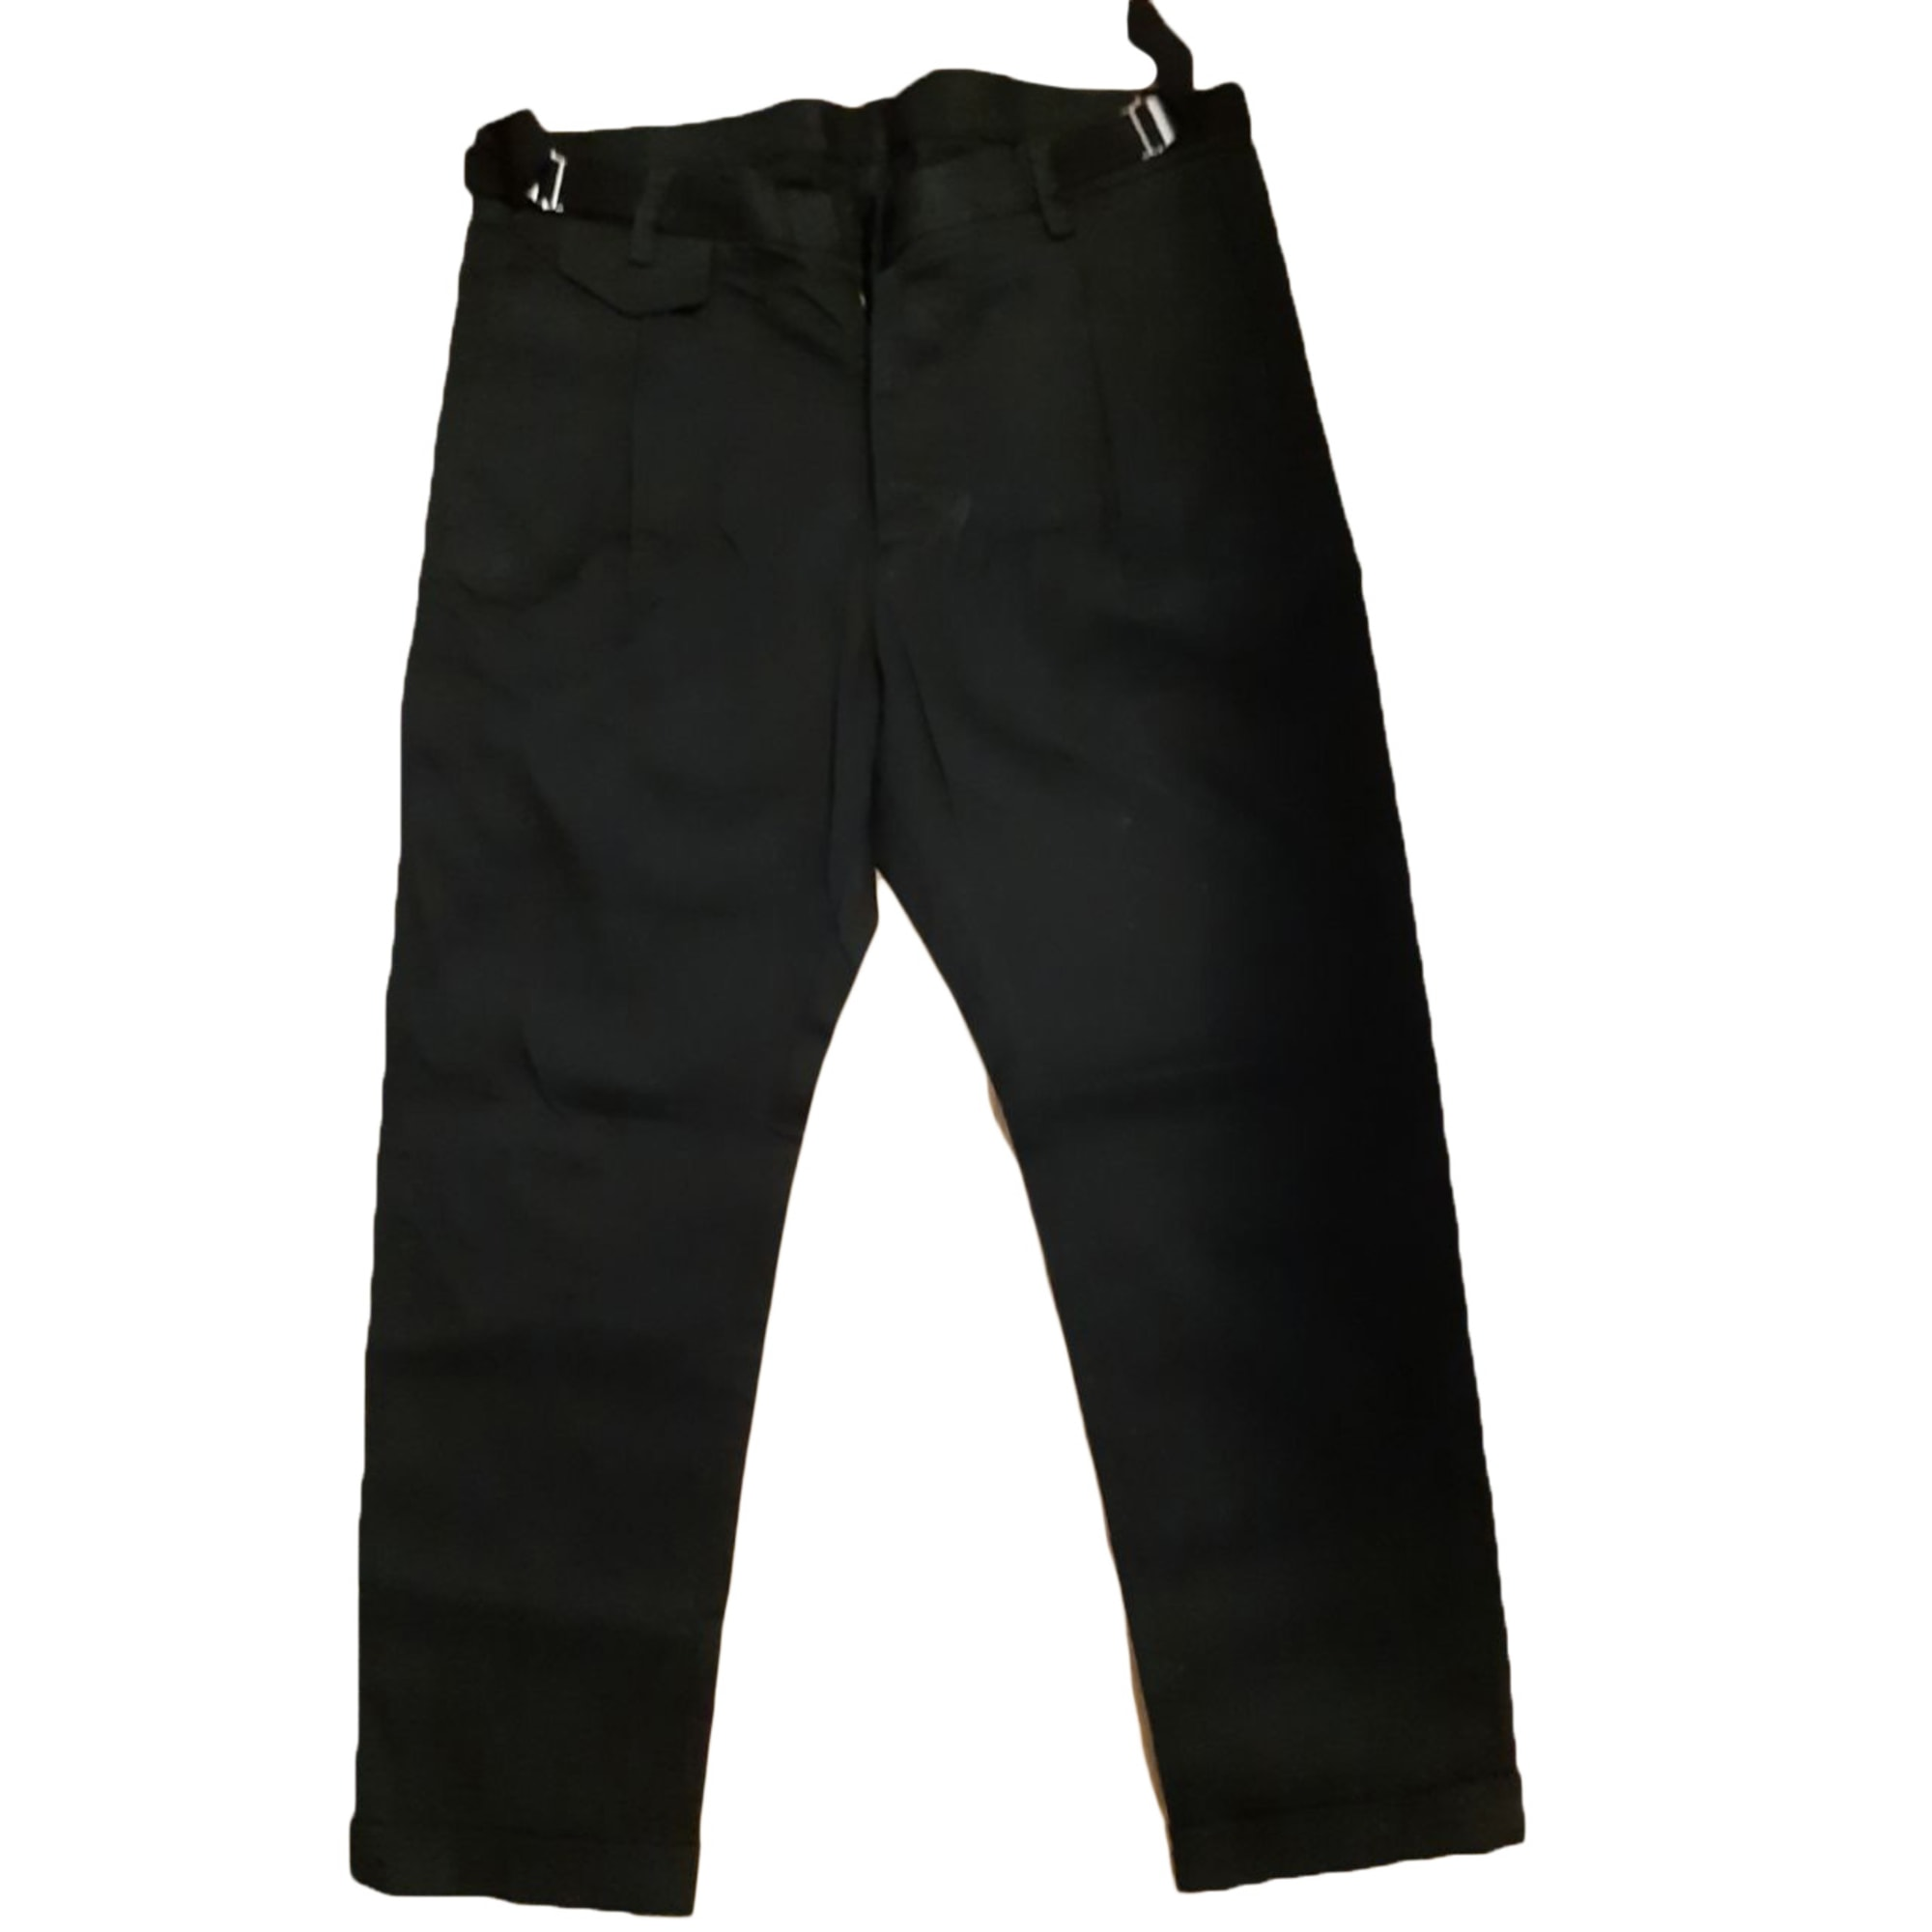 Skinny Jeans DSQUARED2 Black